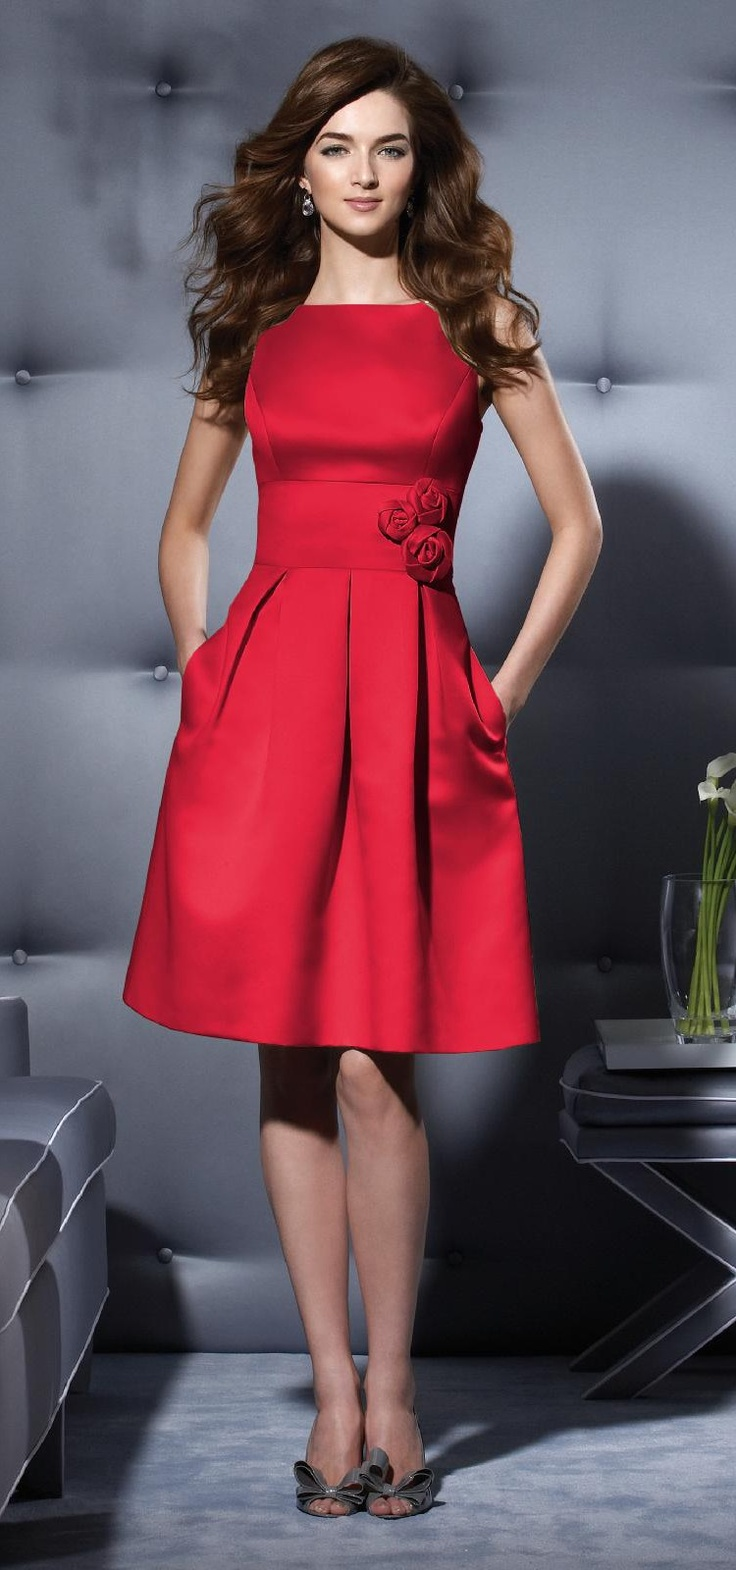 Cute Christmas party dress!  594 - Flame